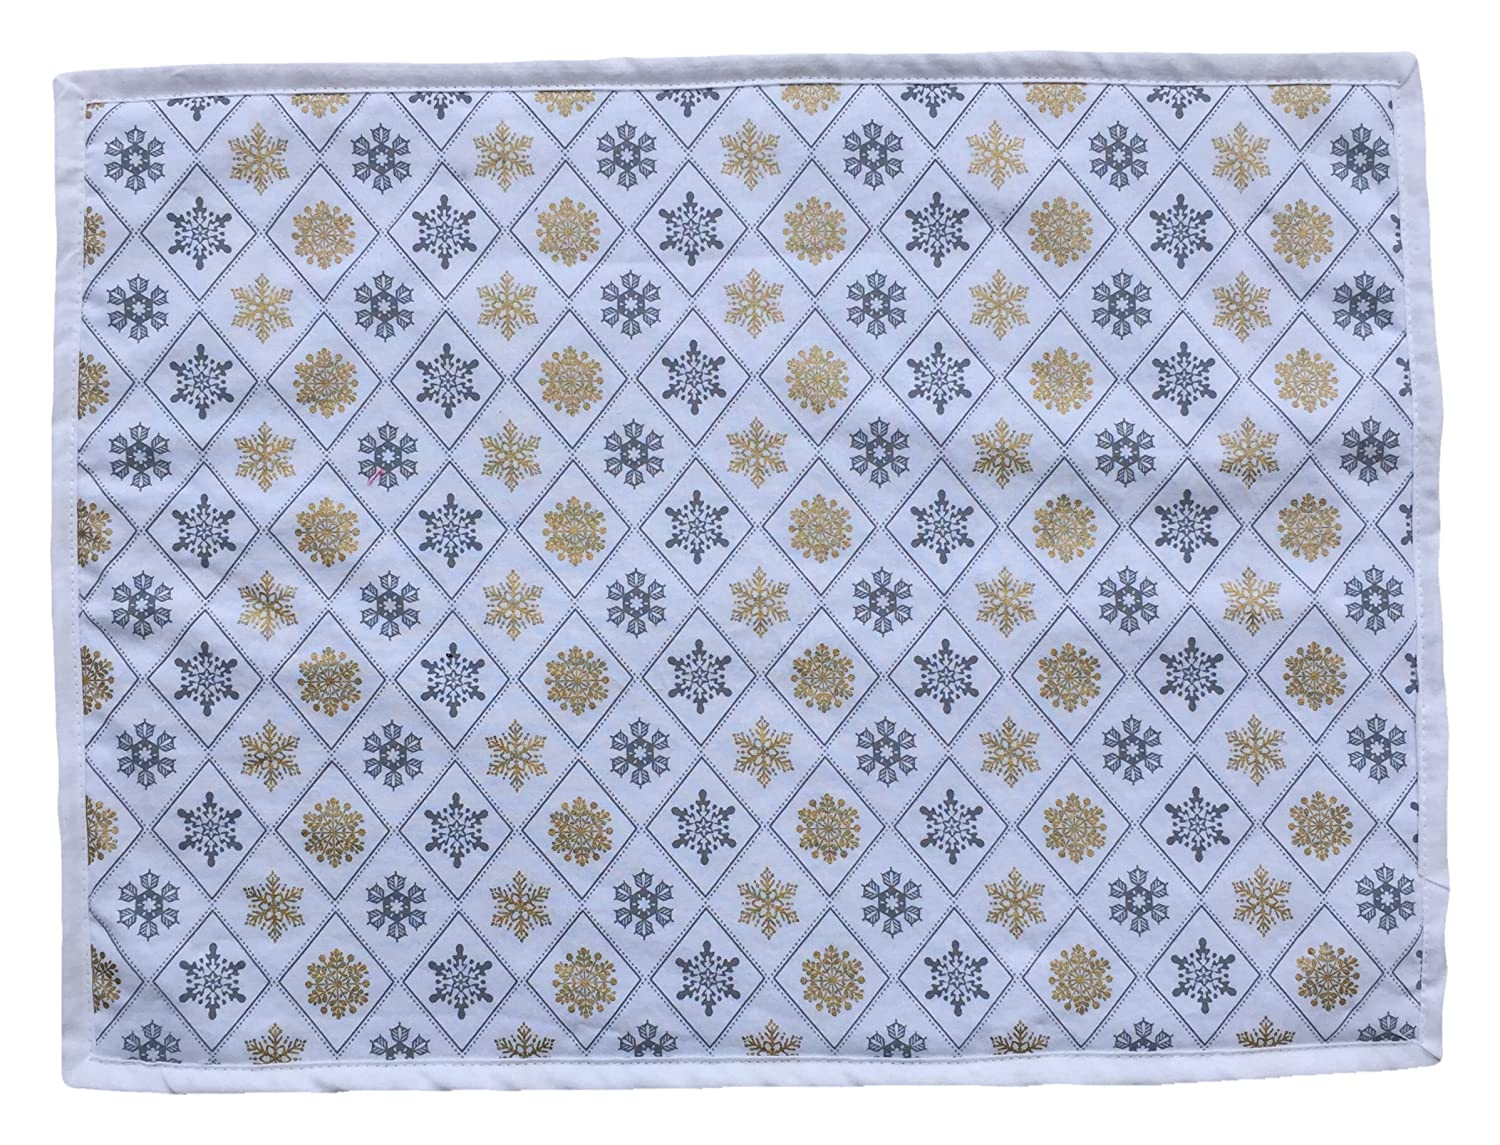 14 x18 Christmas//Winter Placemat Reversible Place Mats Metalic Snowflakes on White Set of 2